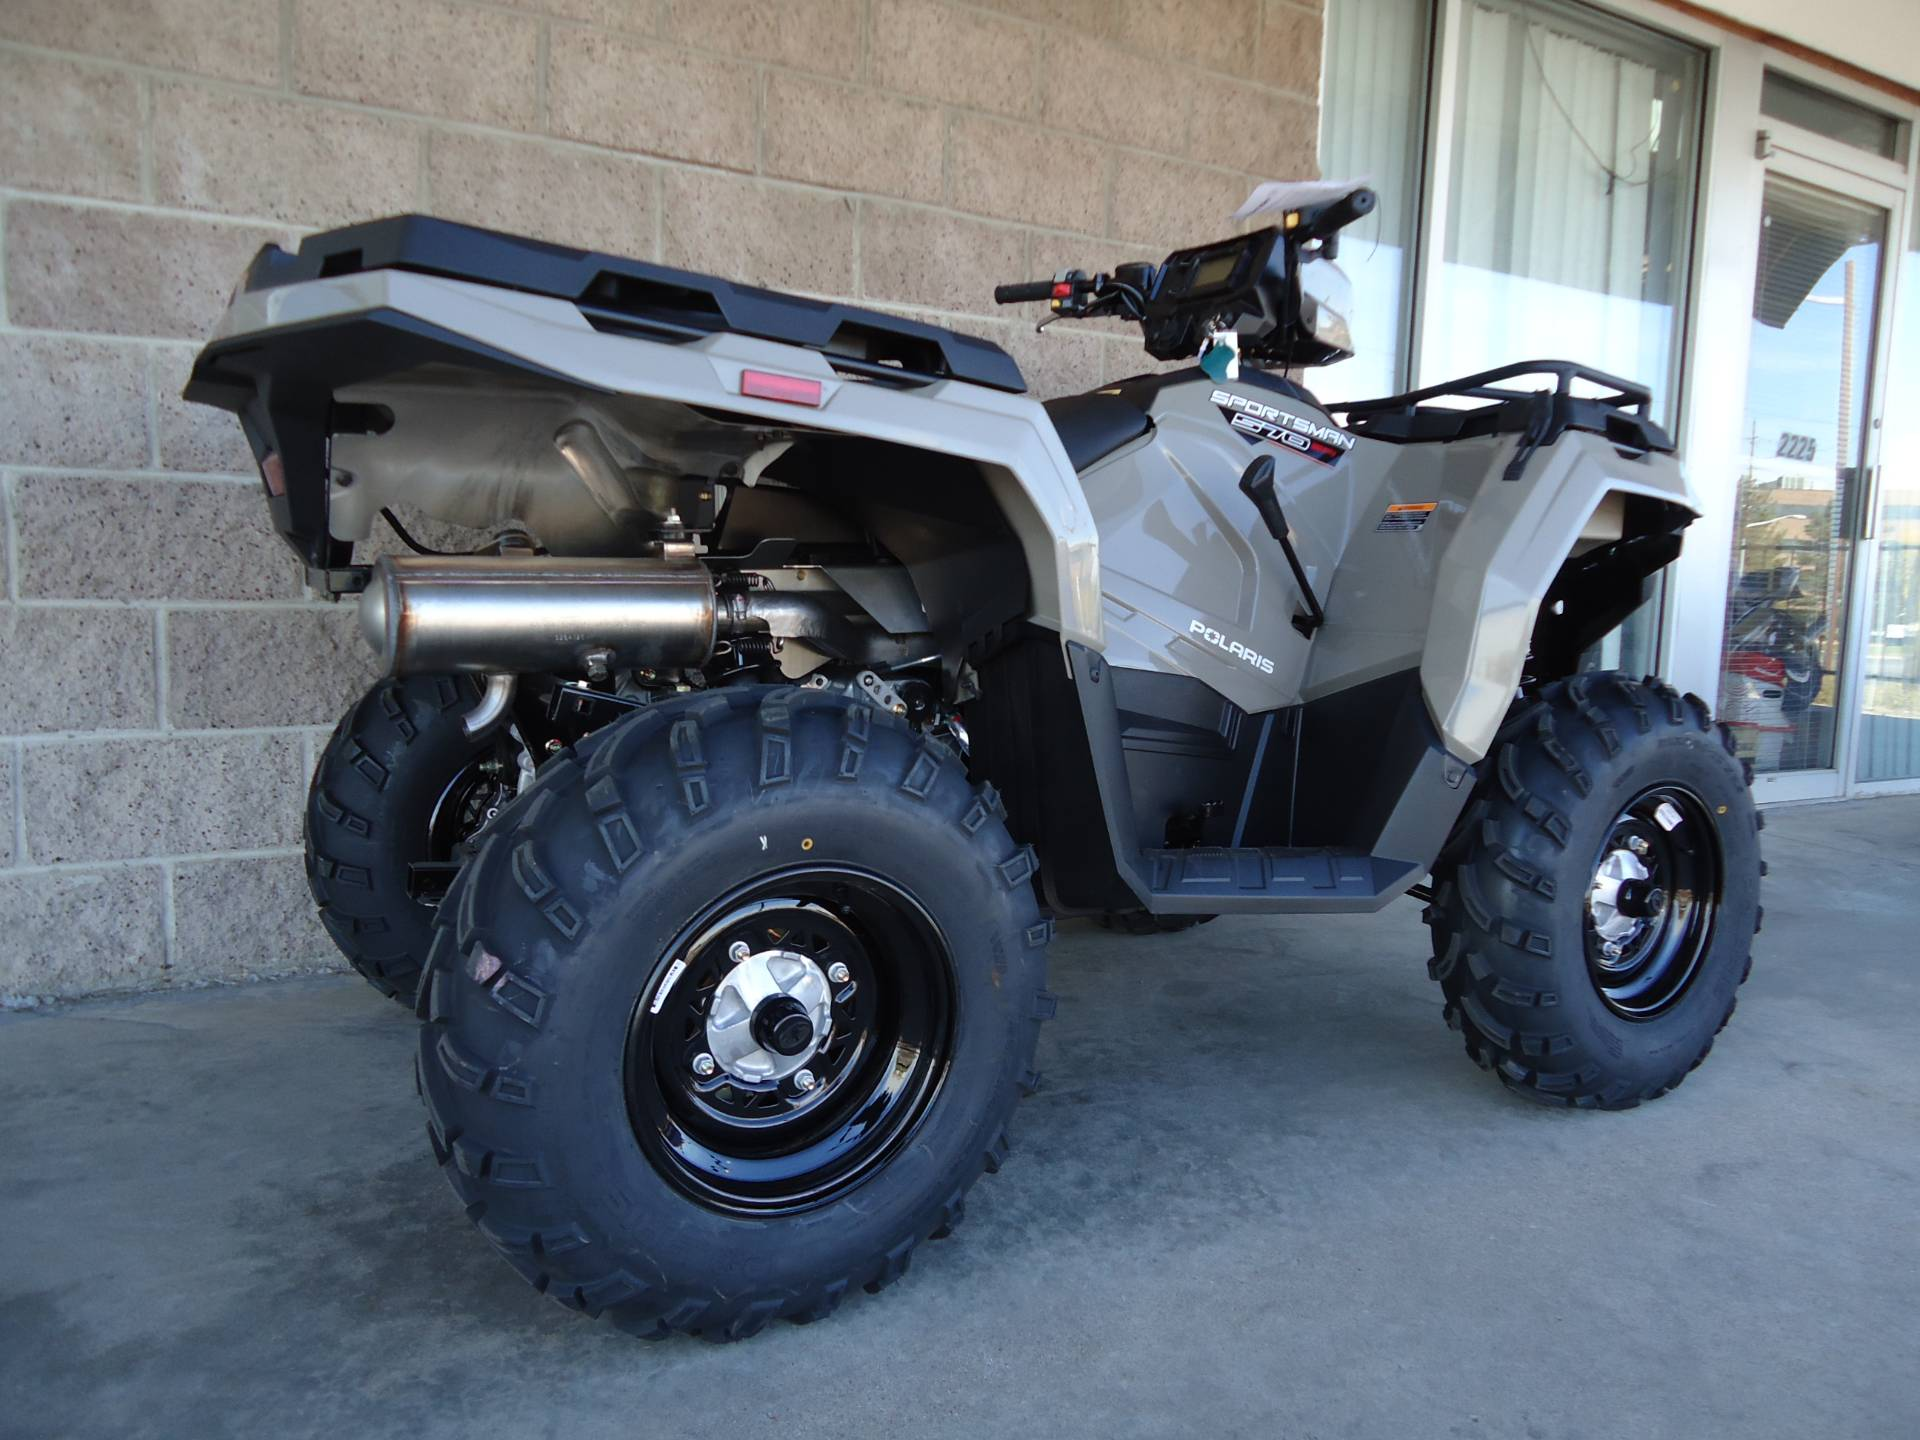 2021 Polaris Sportsman 570 in Denver, Colorado - Photo 3